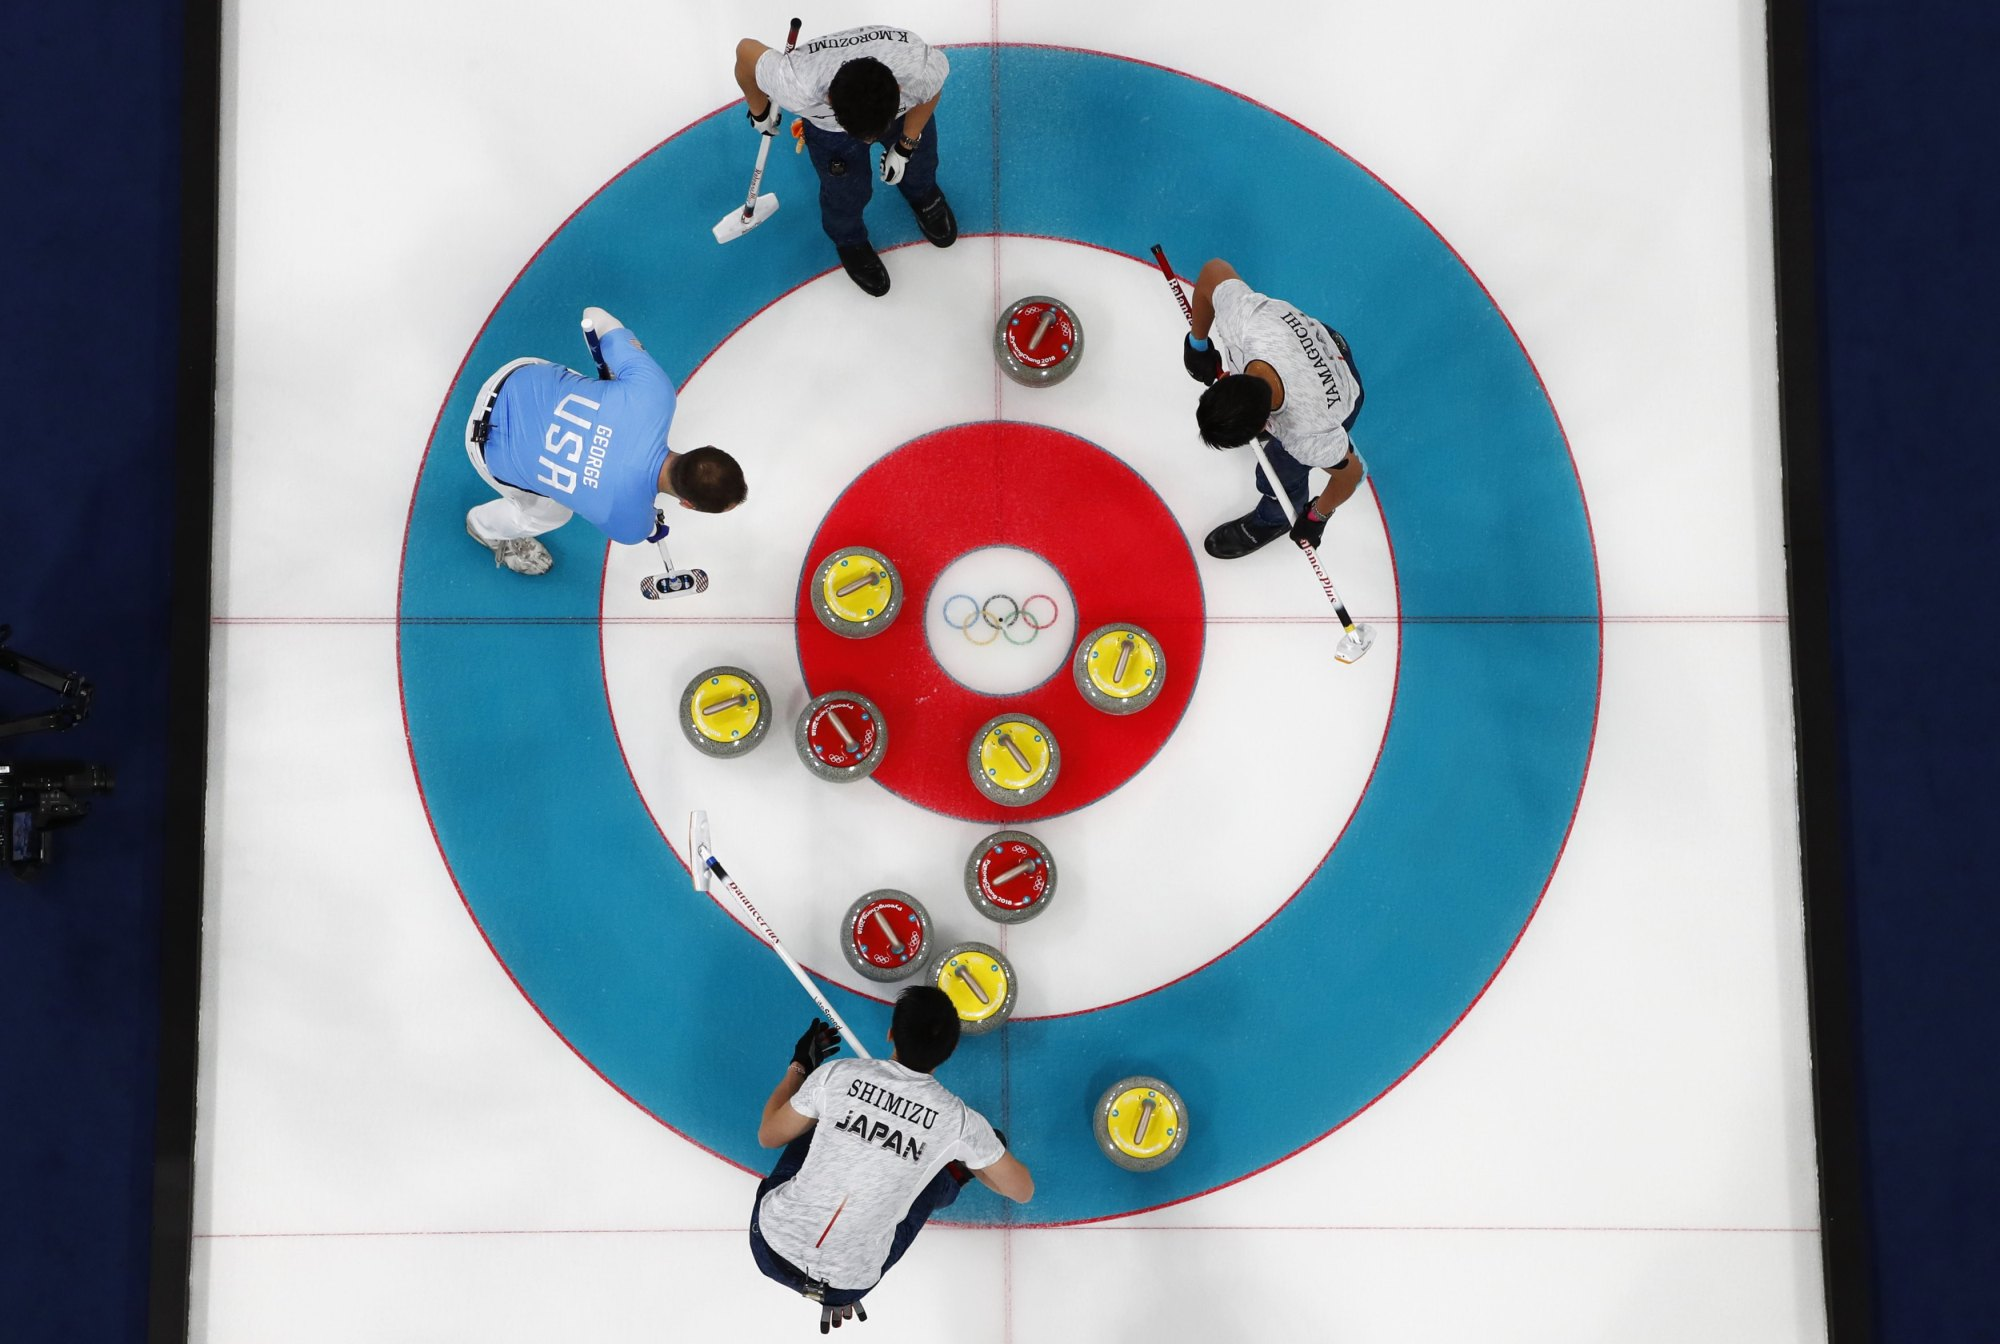 Yusuke Morozumi (top) Tsuyoshi Yamaguchi (right) Tetsuro Shimizu (bottom) and American Tyler George compete in the men's Olympic curling competition on Sunday. | REUTERS